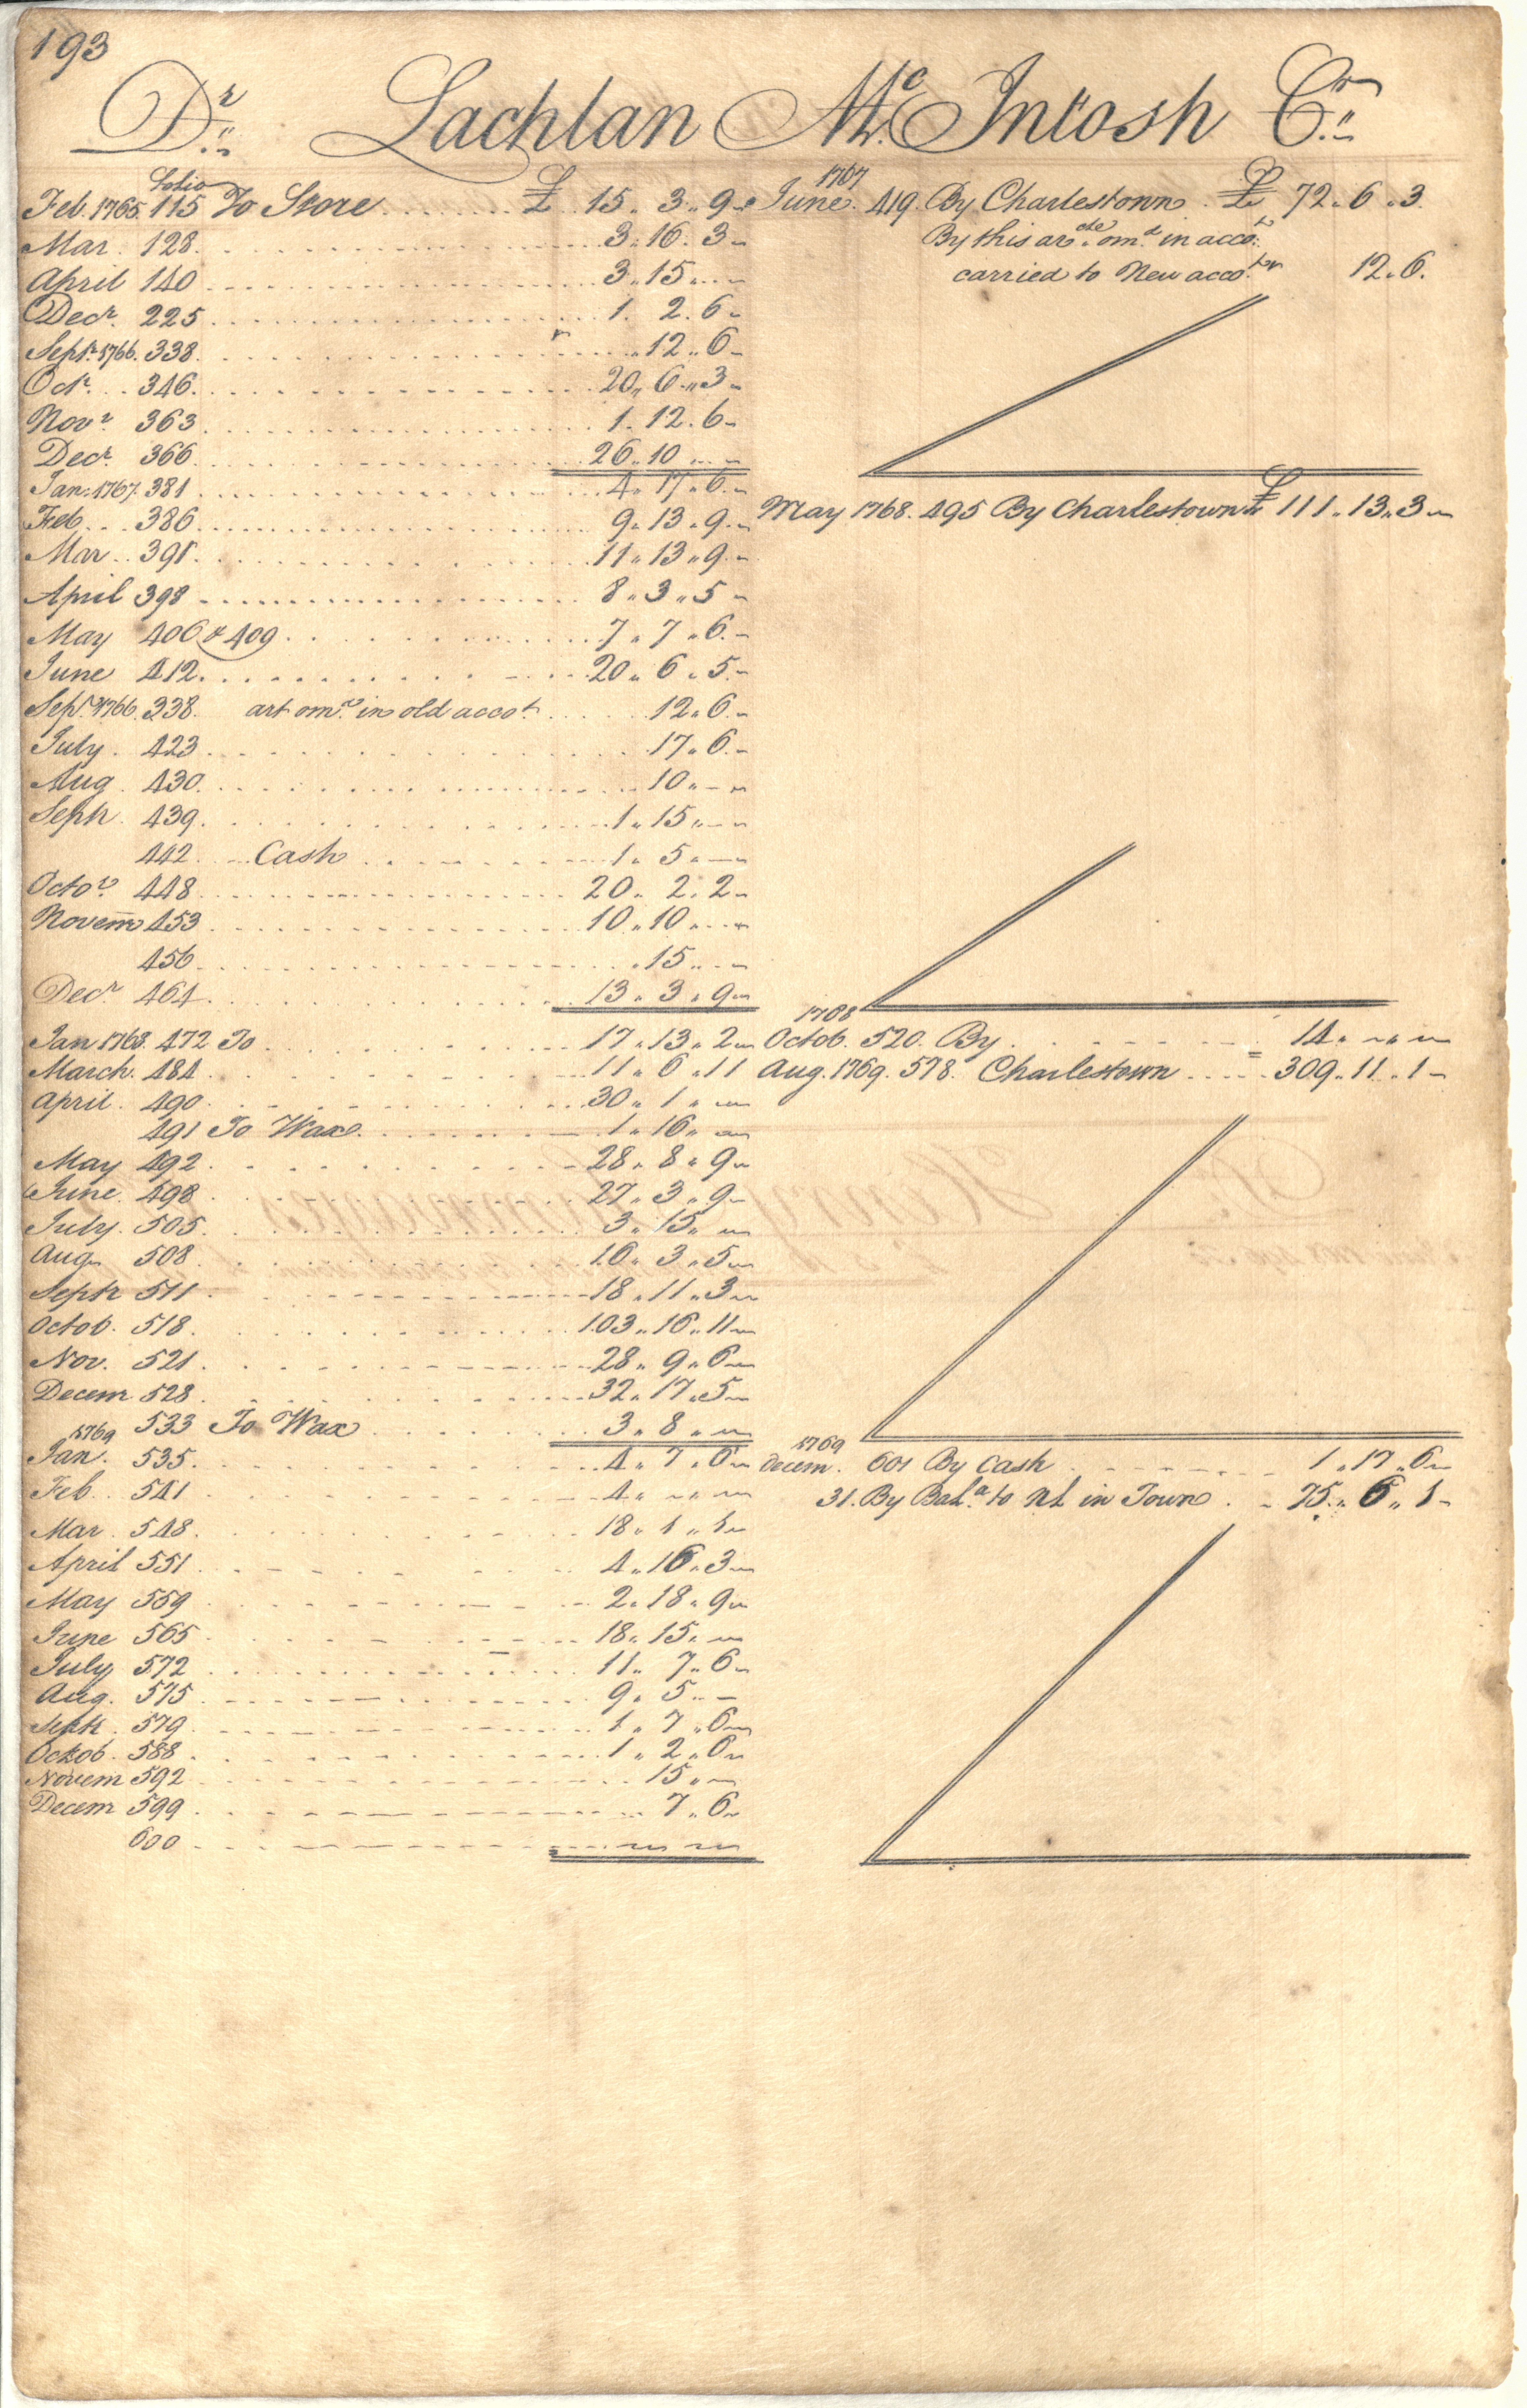 Plowden Weston's Business Ledger, page 193